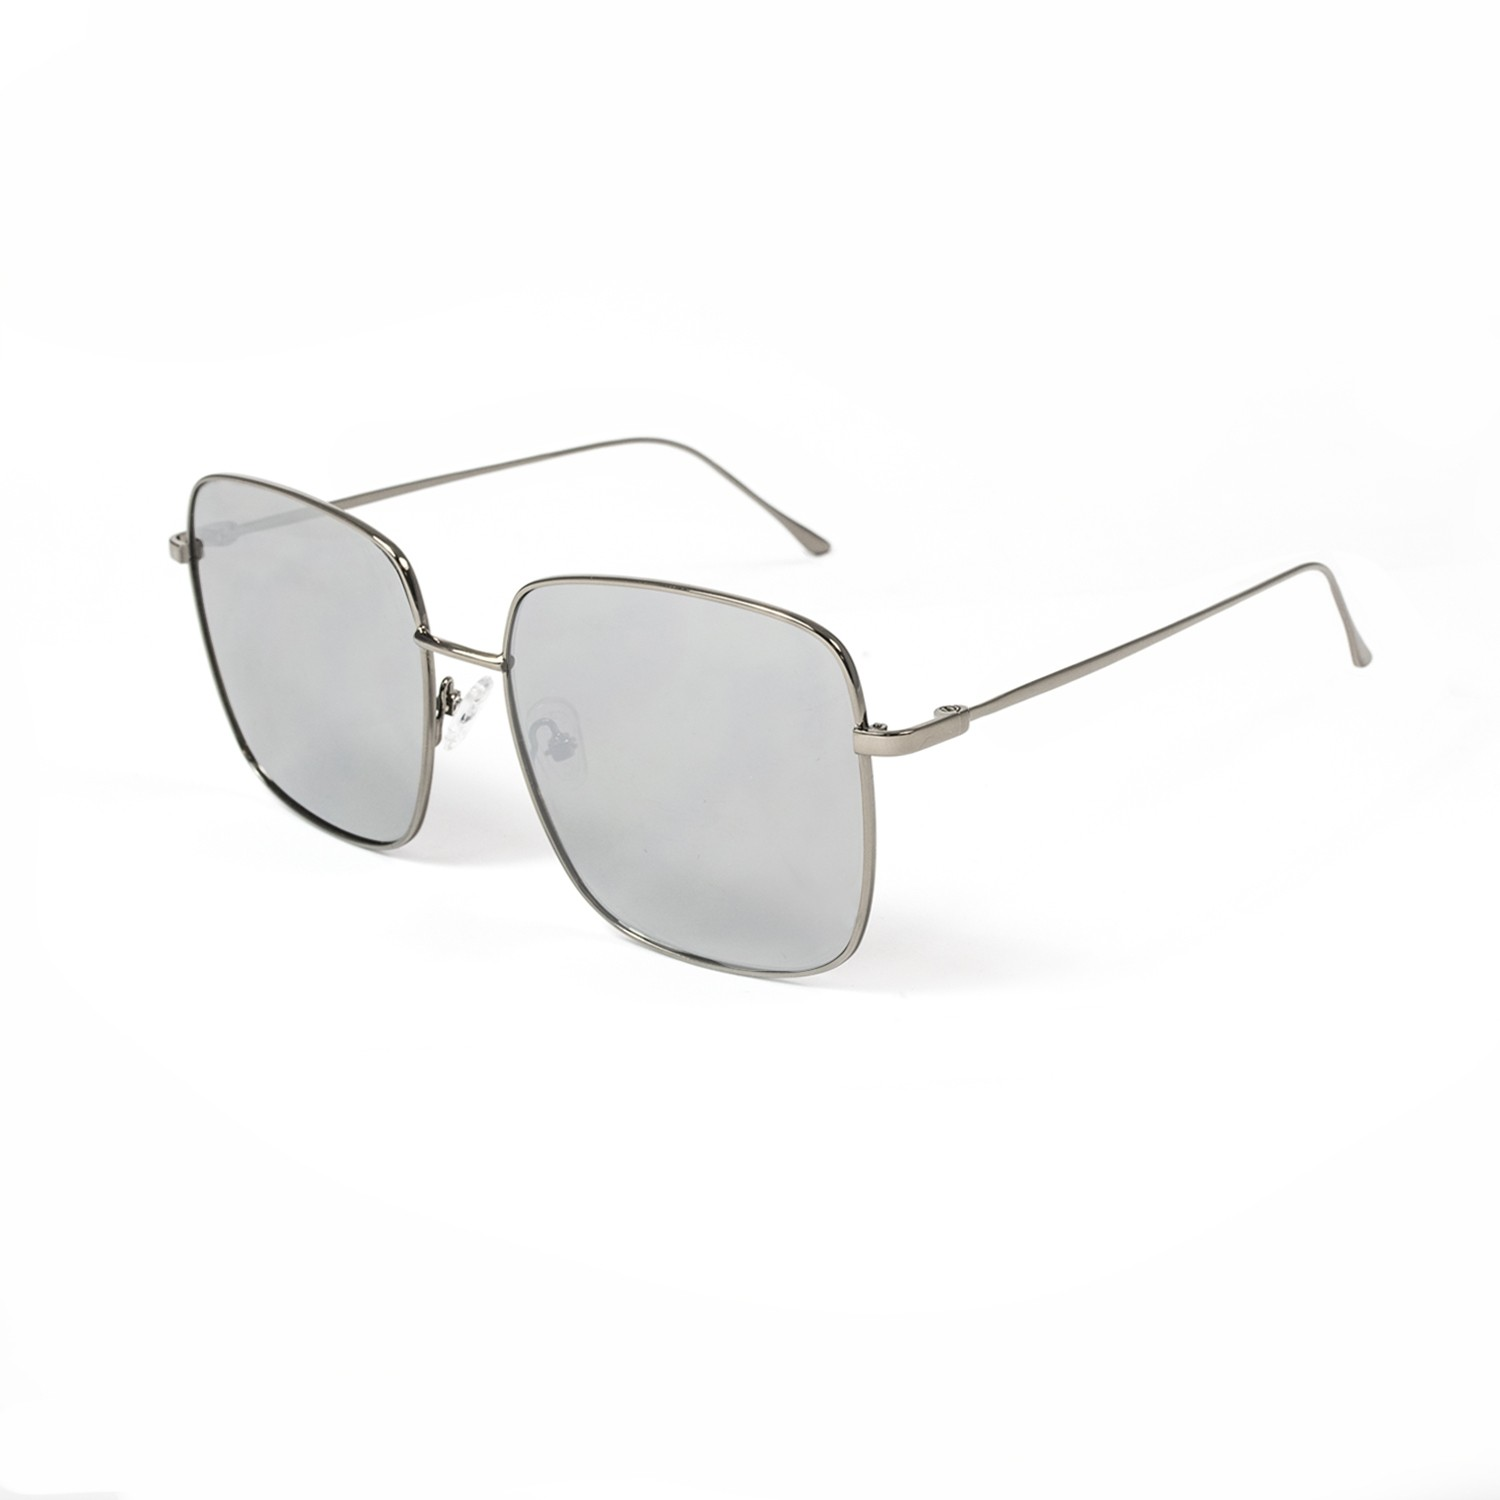 DOROTHY shiny silver frame with flat silver len